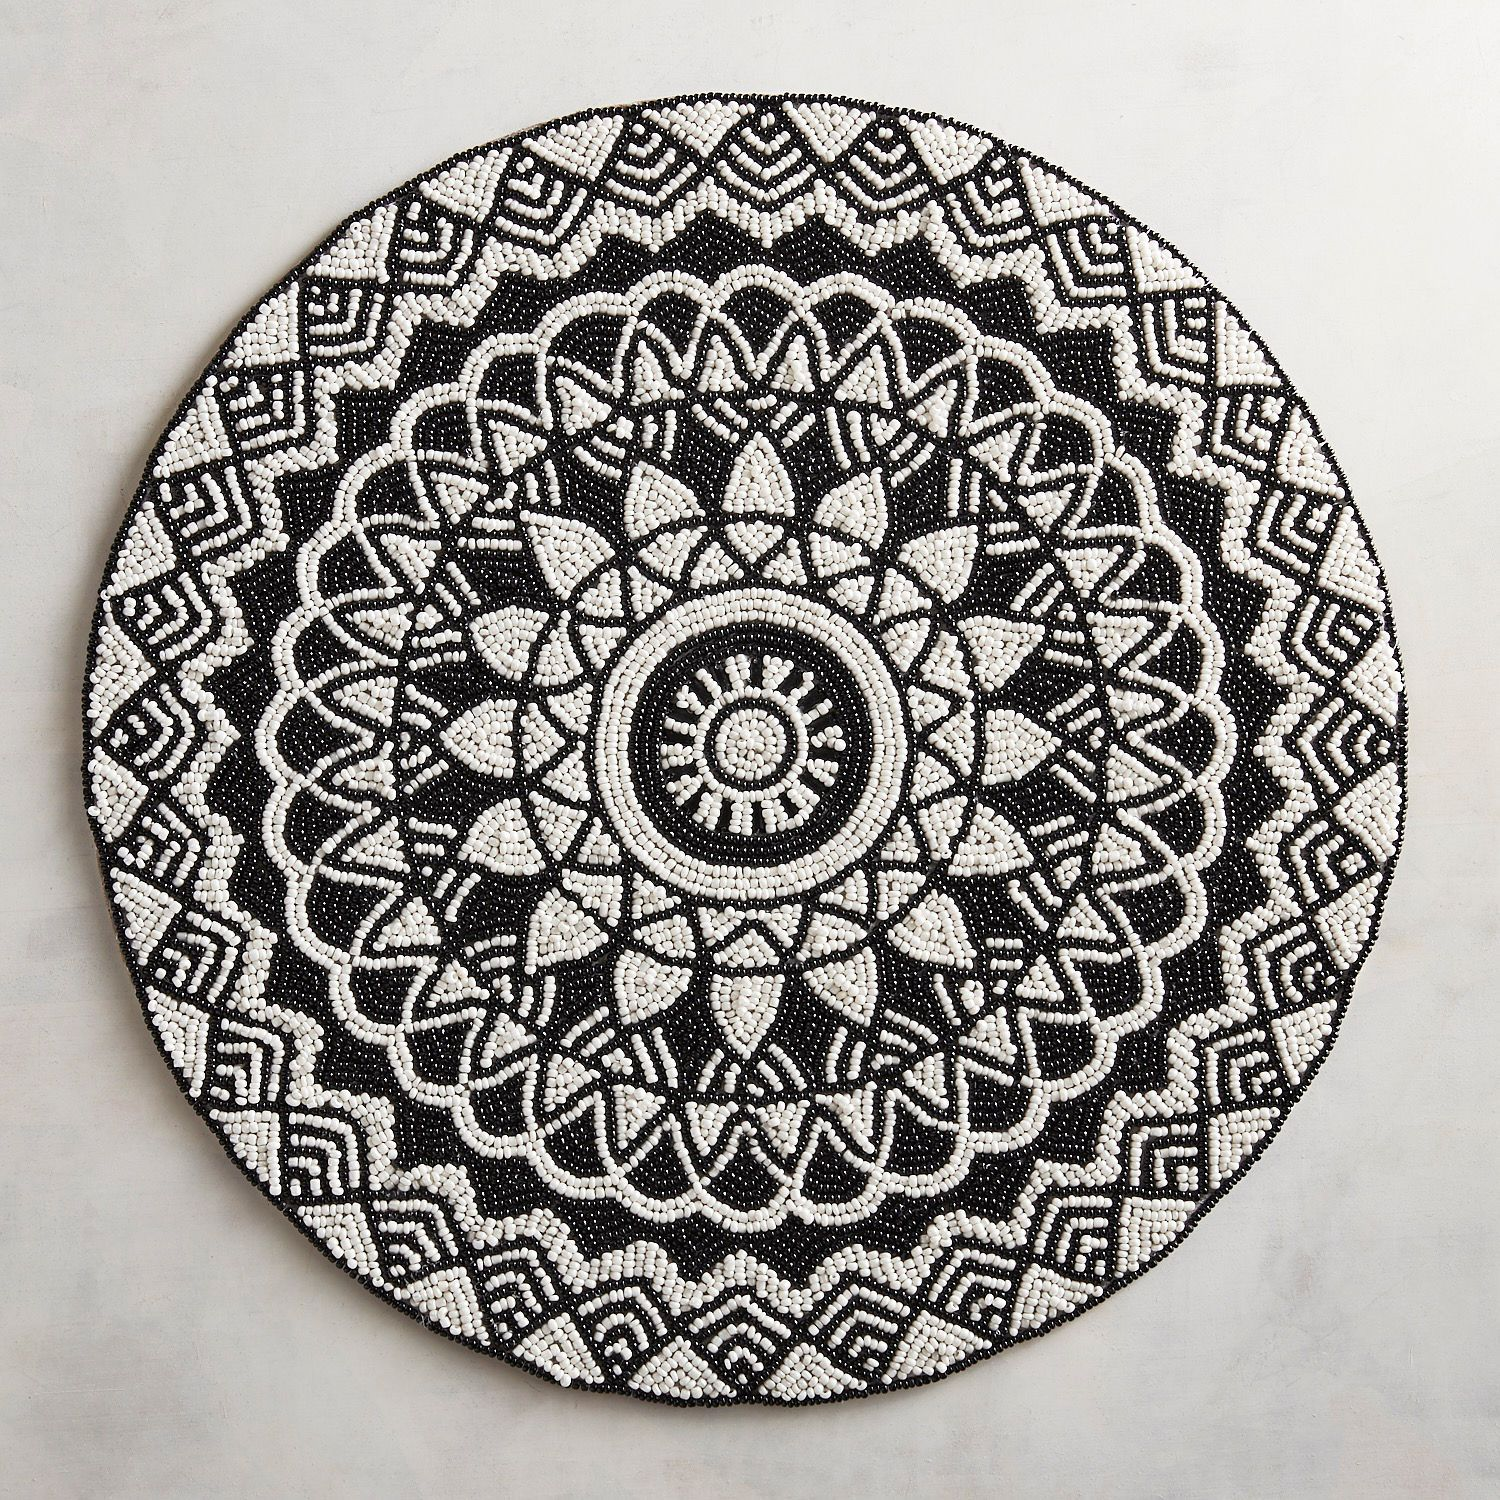 black ivory medallion placemat table linens accent modern moroccan pier imports high end coffee bathroom styles wicker lawn furniture eileen gray side round bedside iron glass